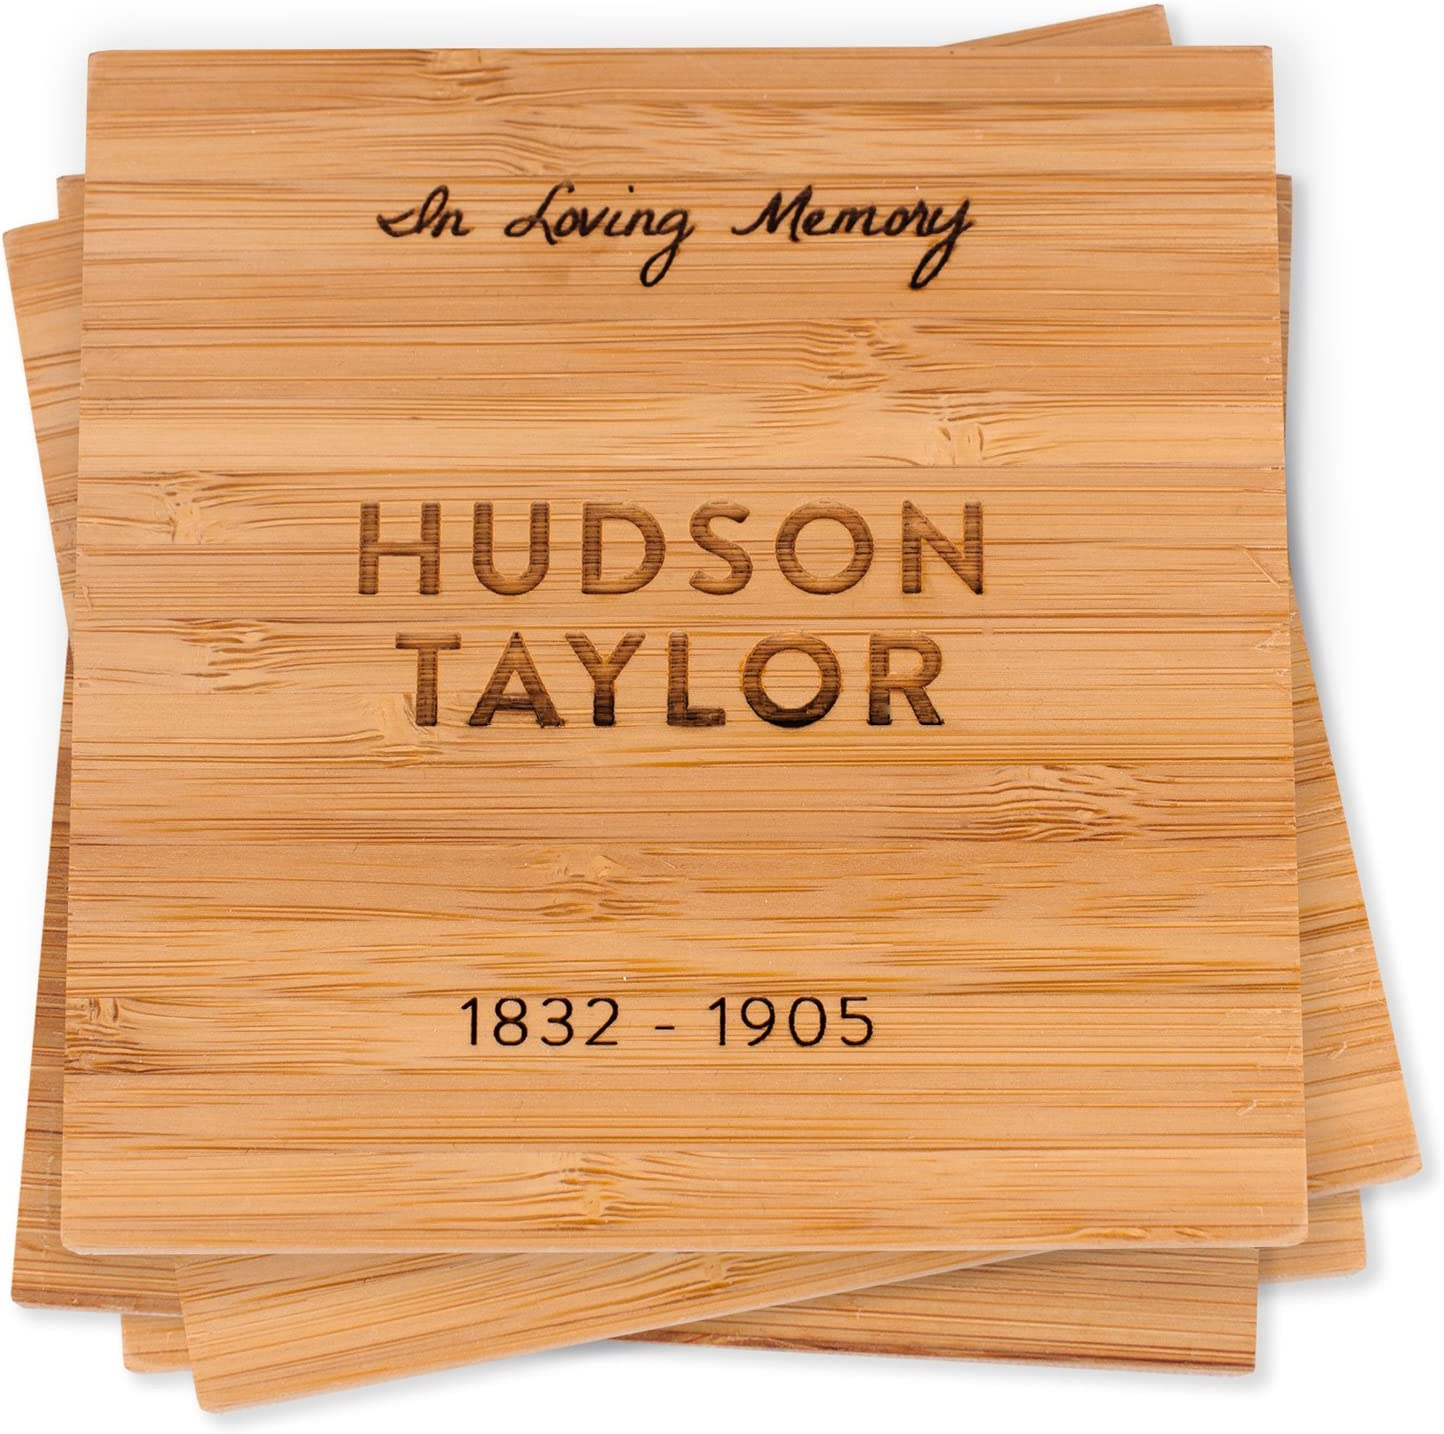 Amazon Com Personalized Memorial Bamboo Wood Coaster Set Sympathy Gift Set Of 4 Custom Engraved Coasters With Holder In Loving Memory Coasters